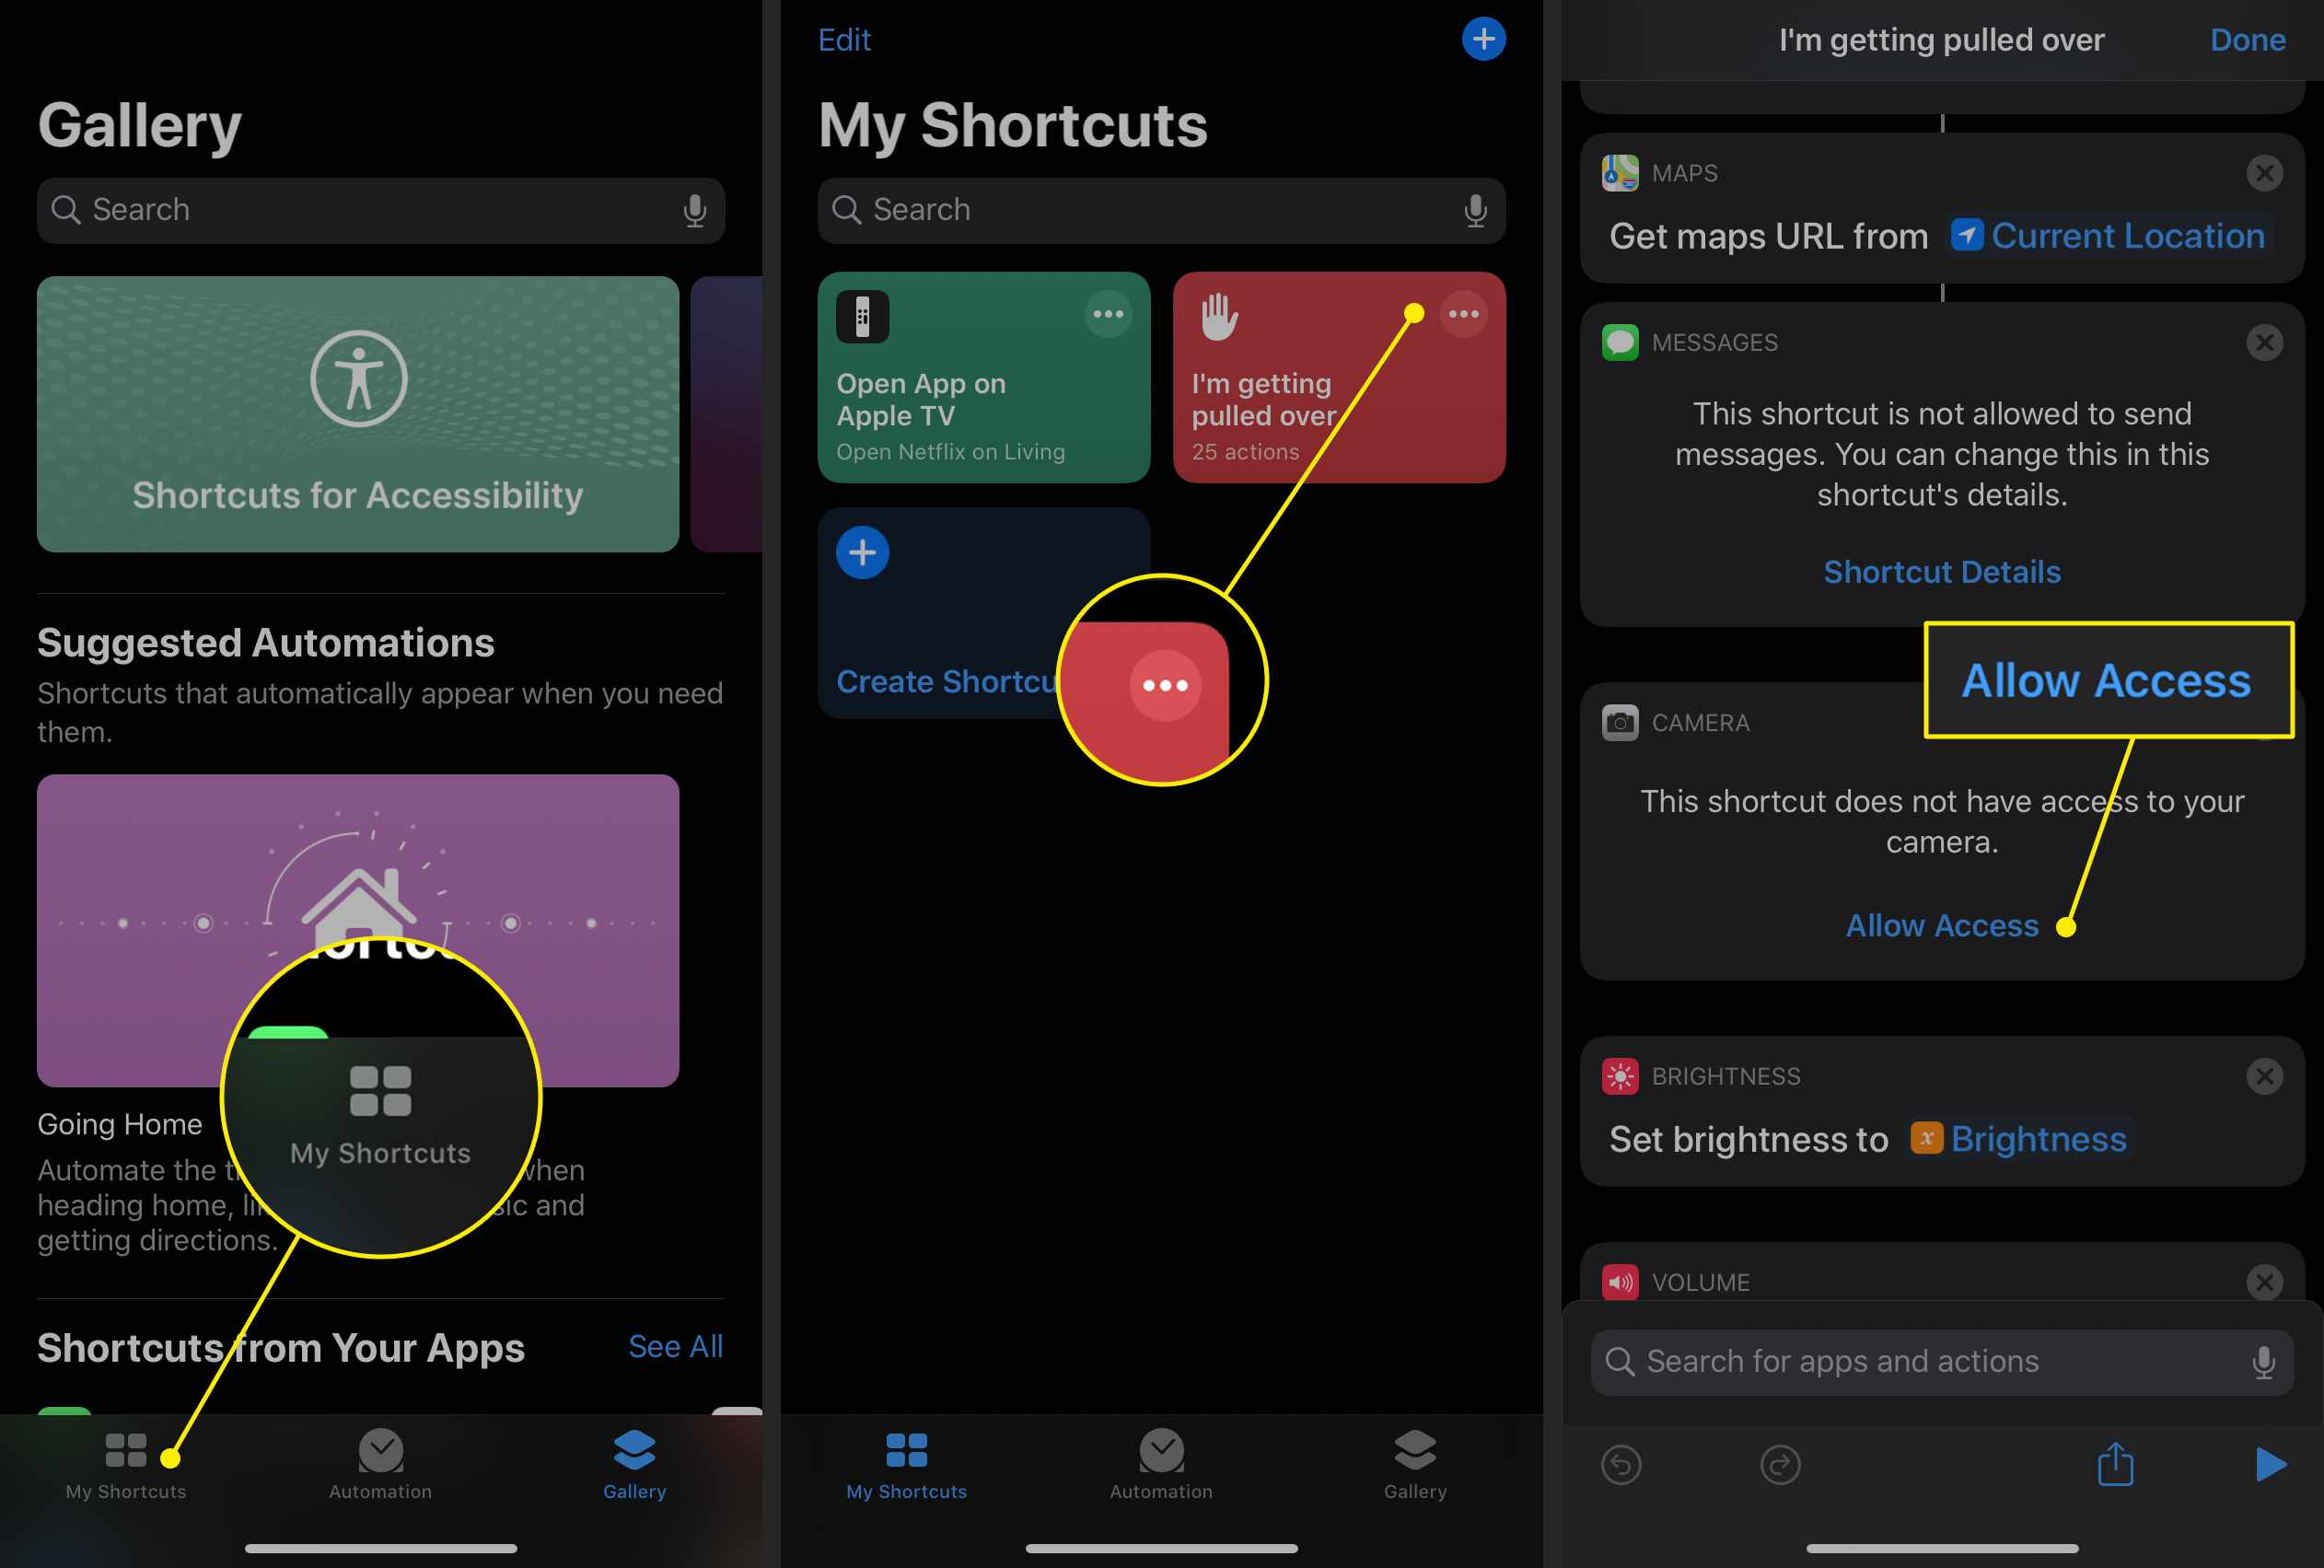 Allowing access to the Shortcuts app